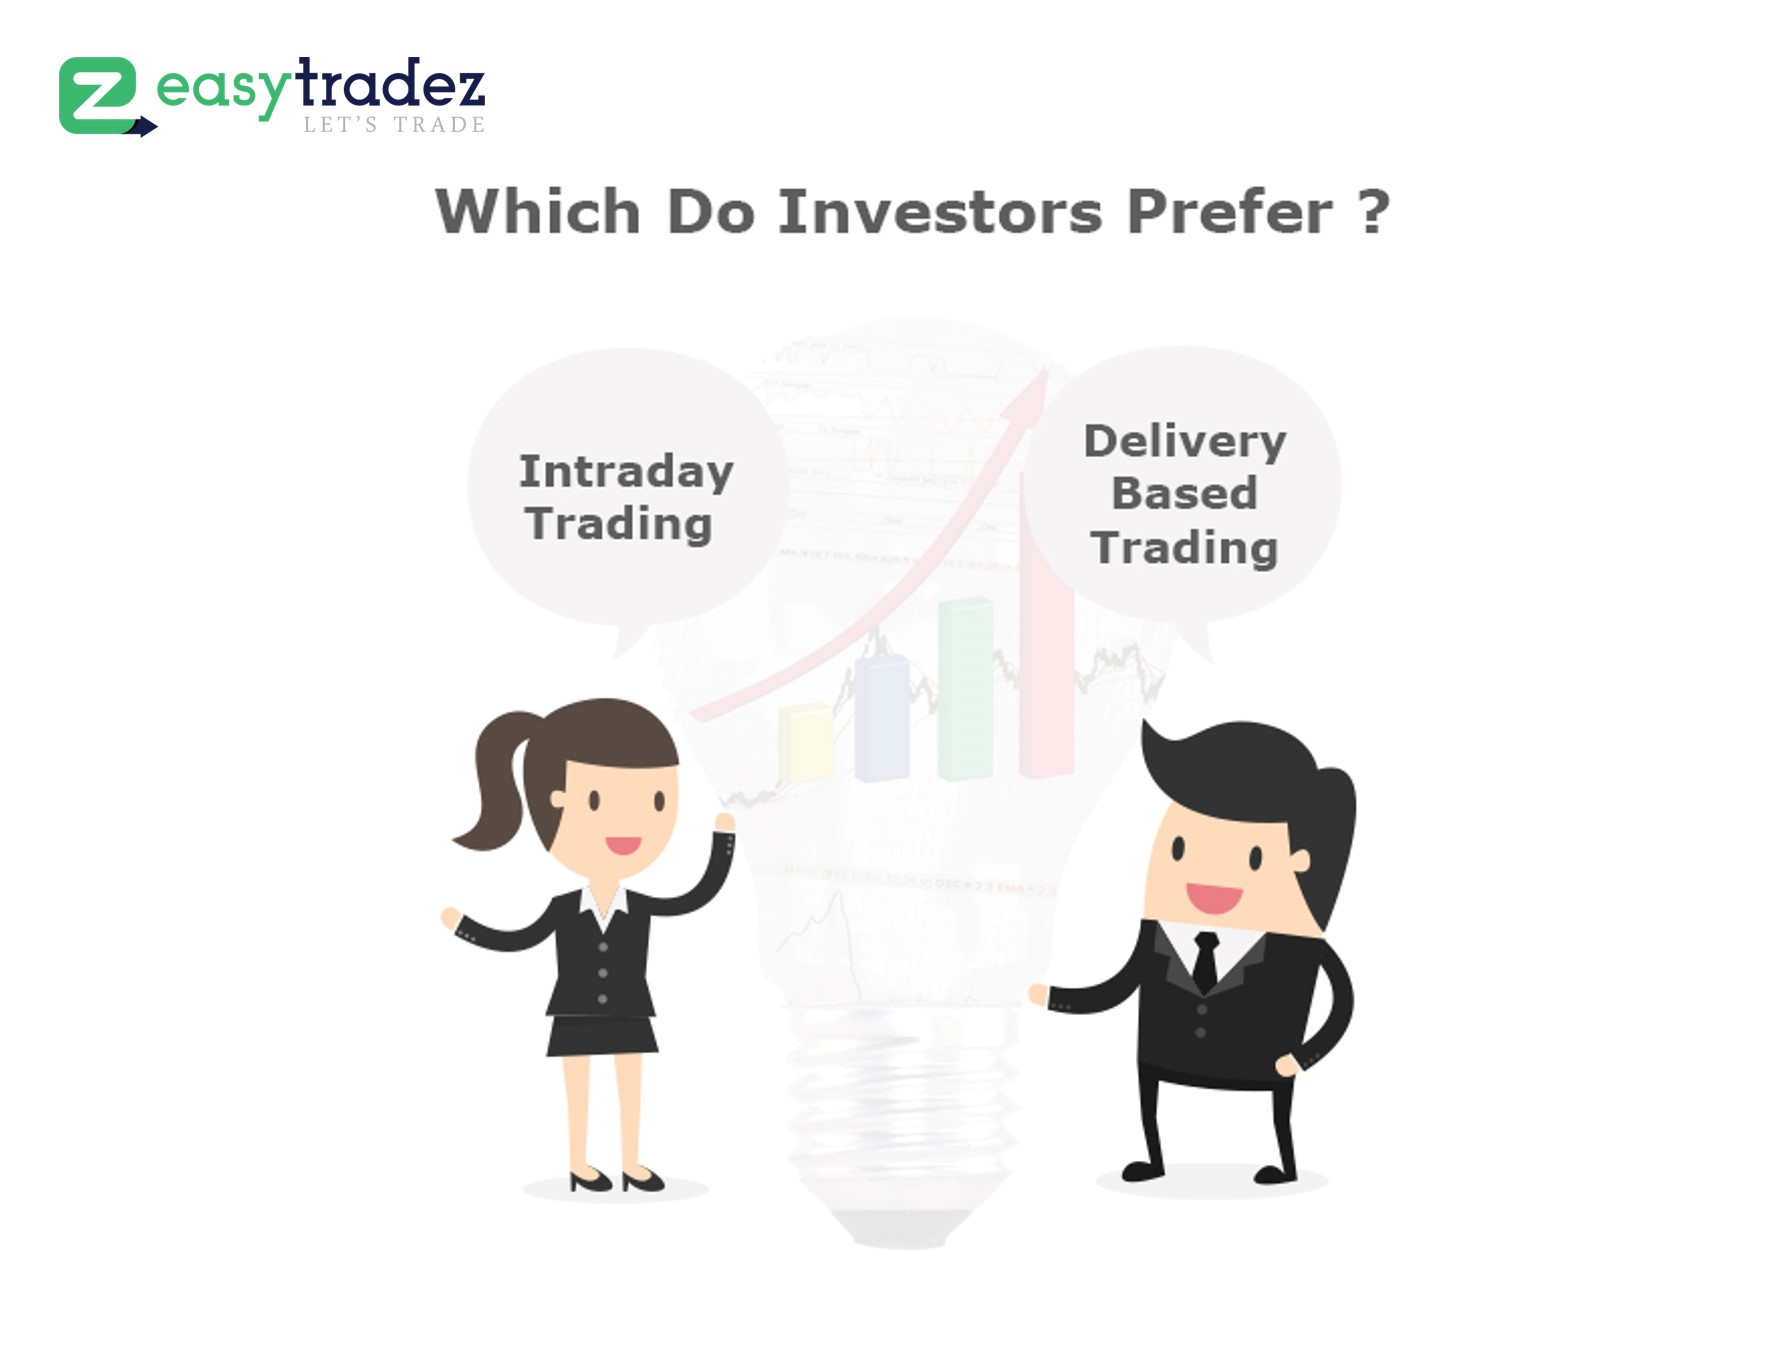 Intraday Trading or Delivery Trading: Which Do Investors Prefer?